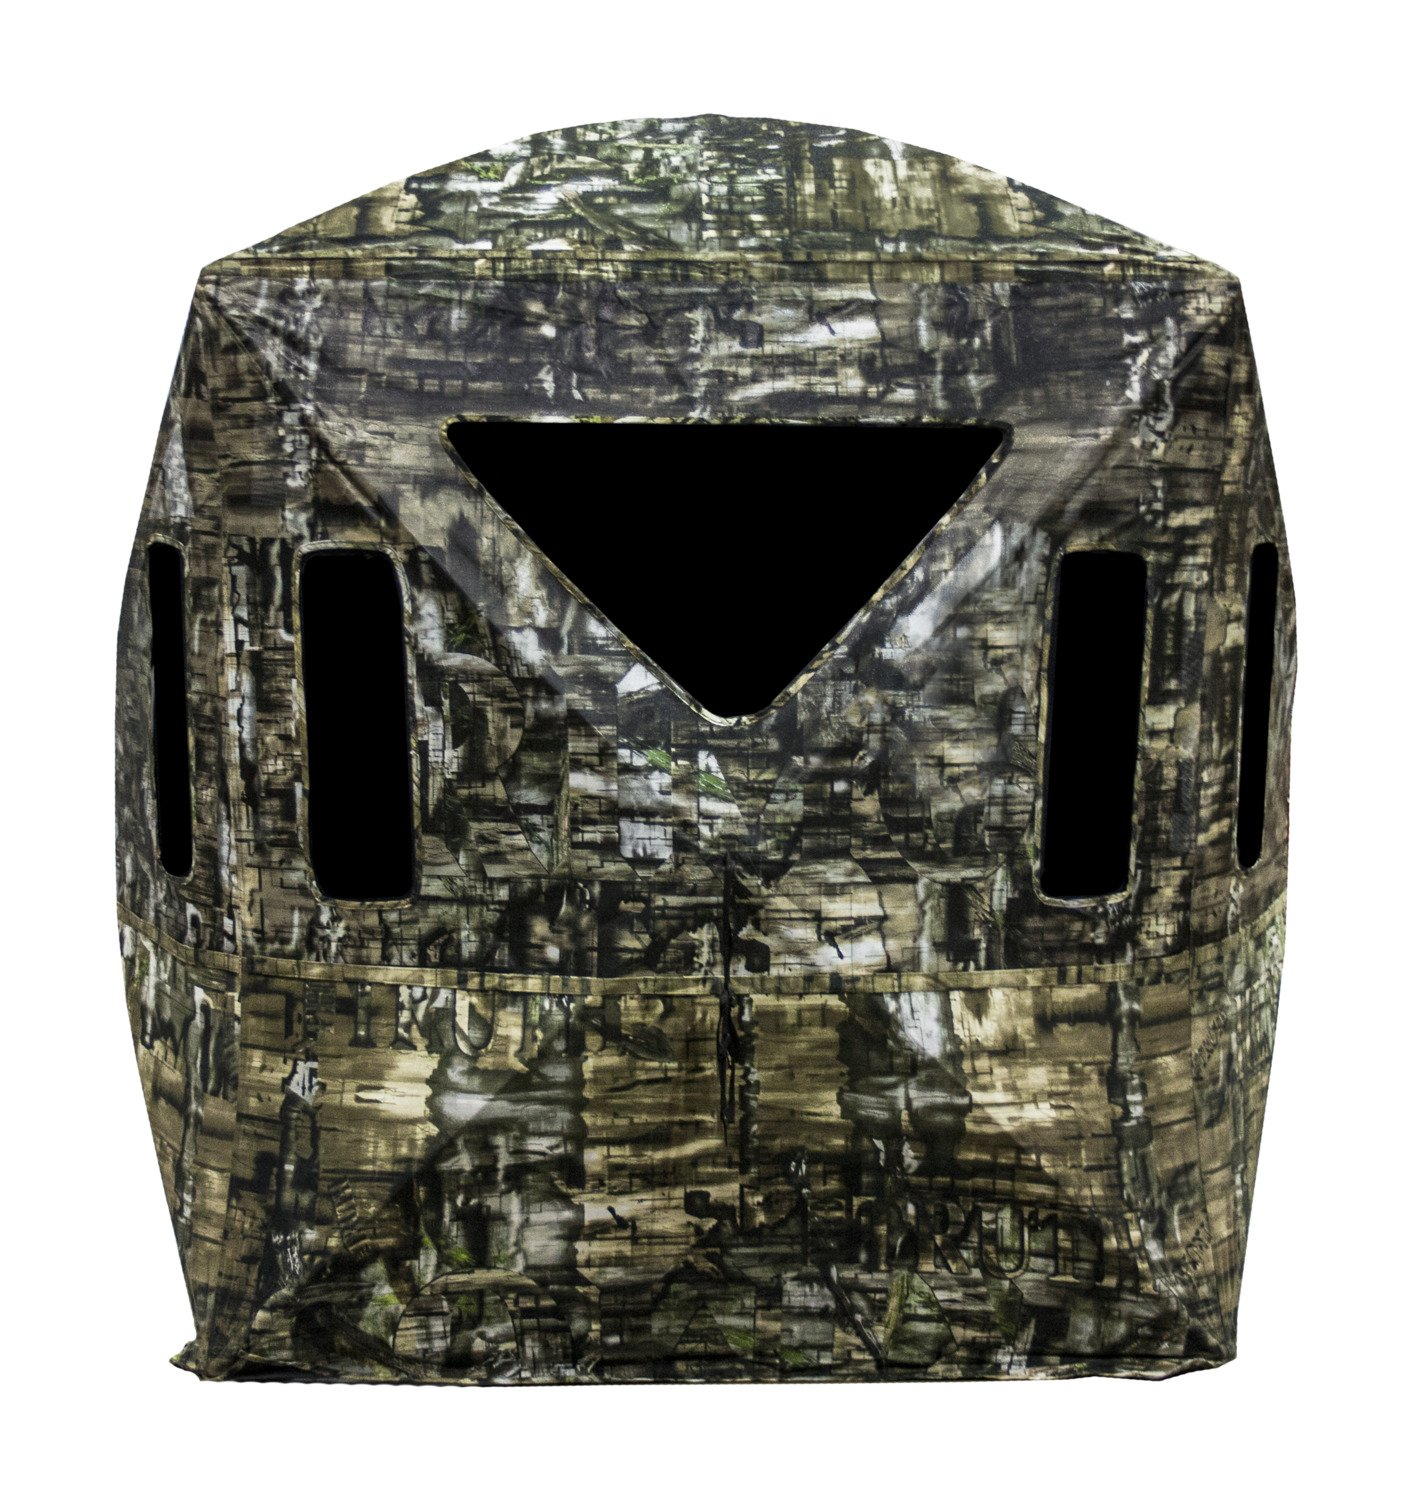 Primos Double Bull Surround View Blind 270